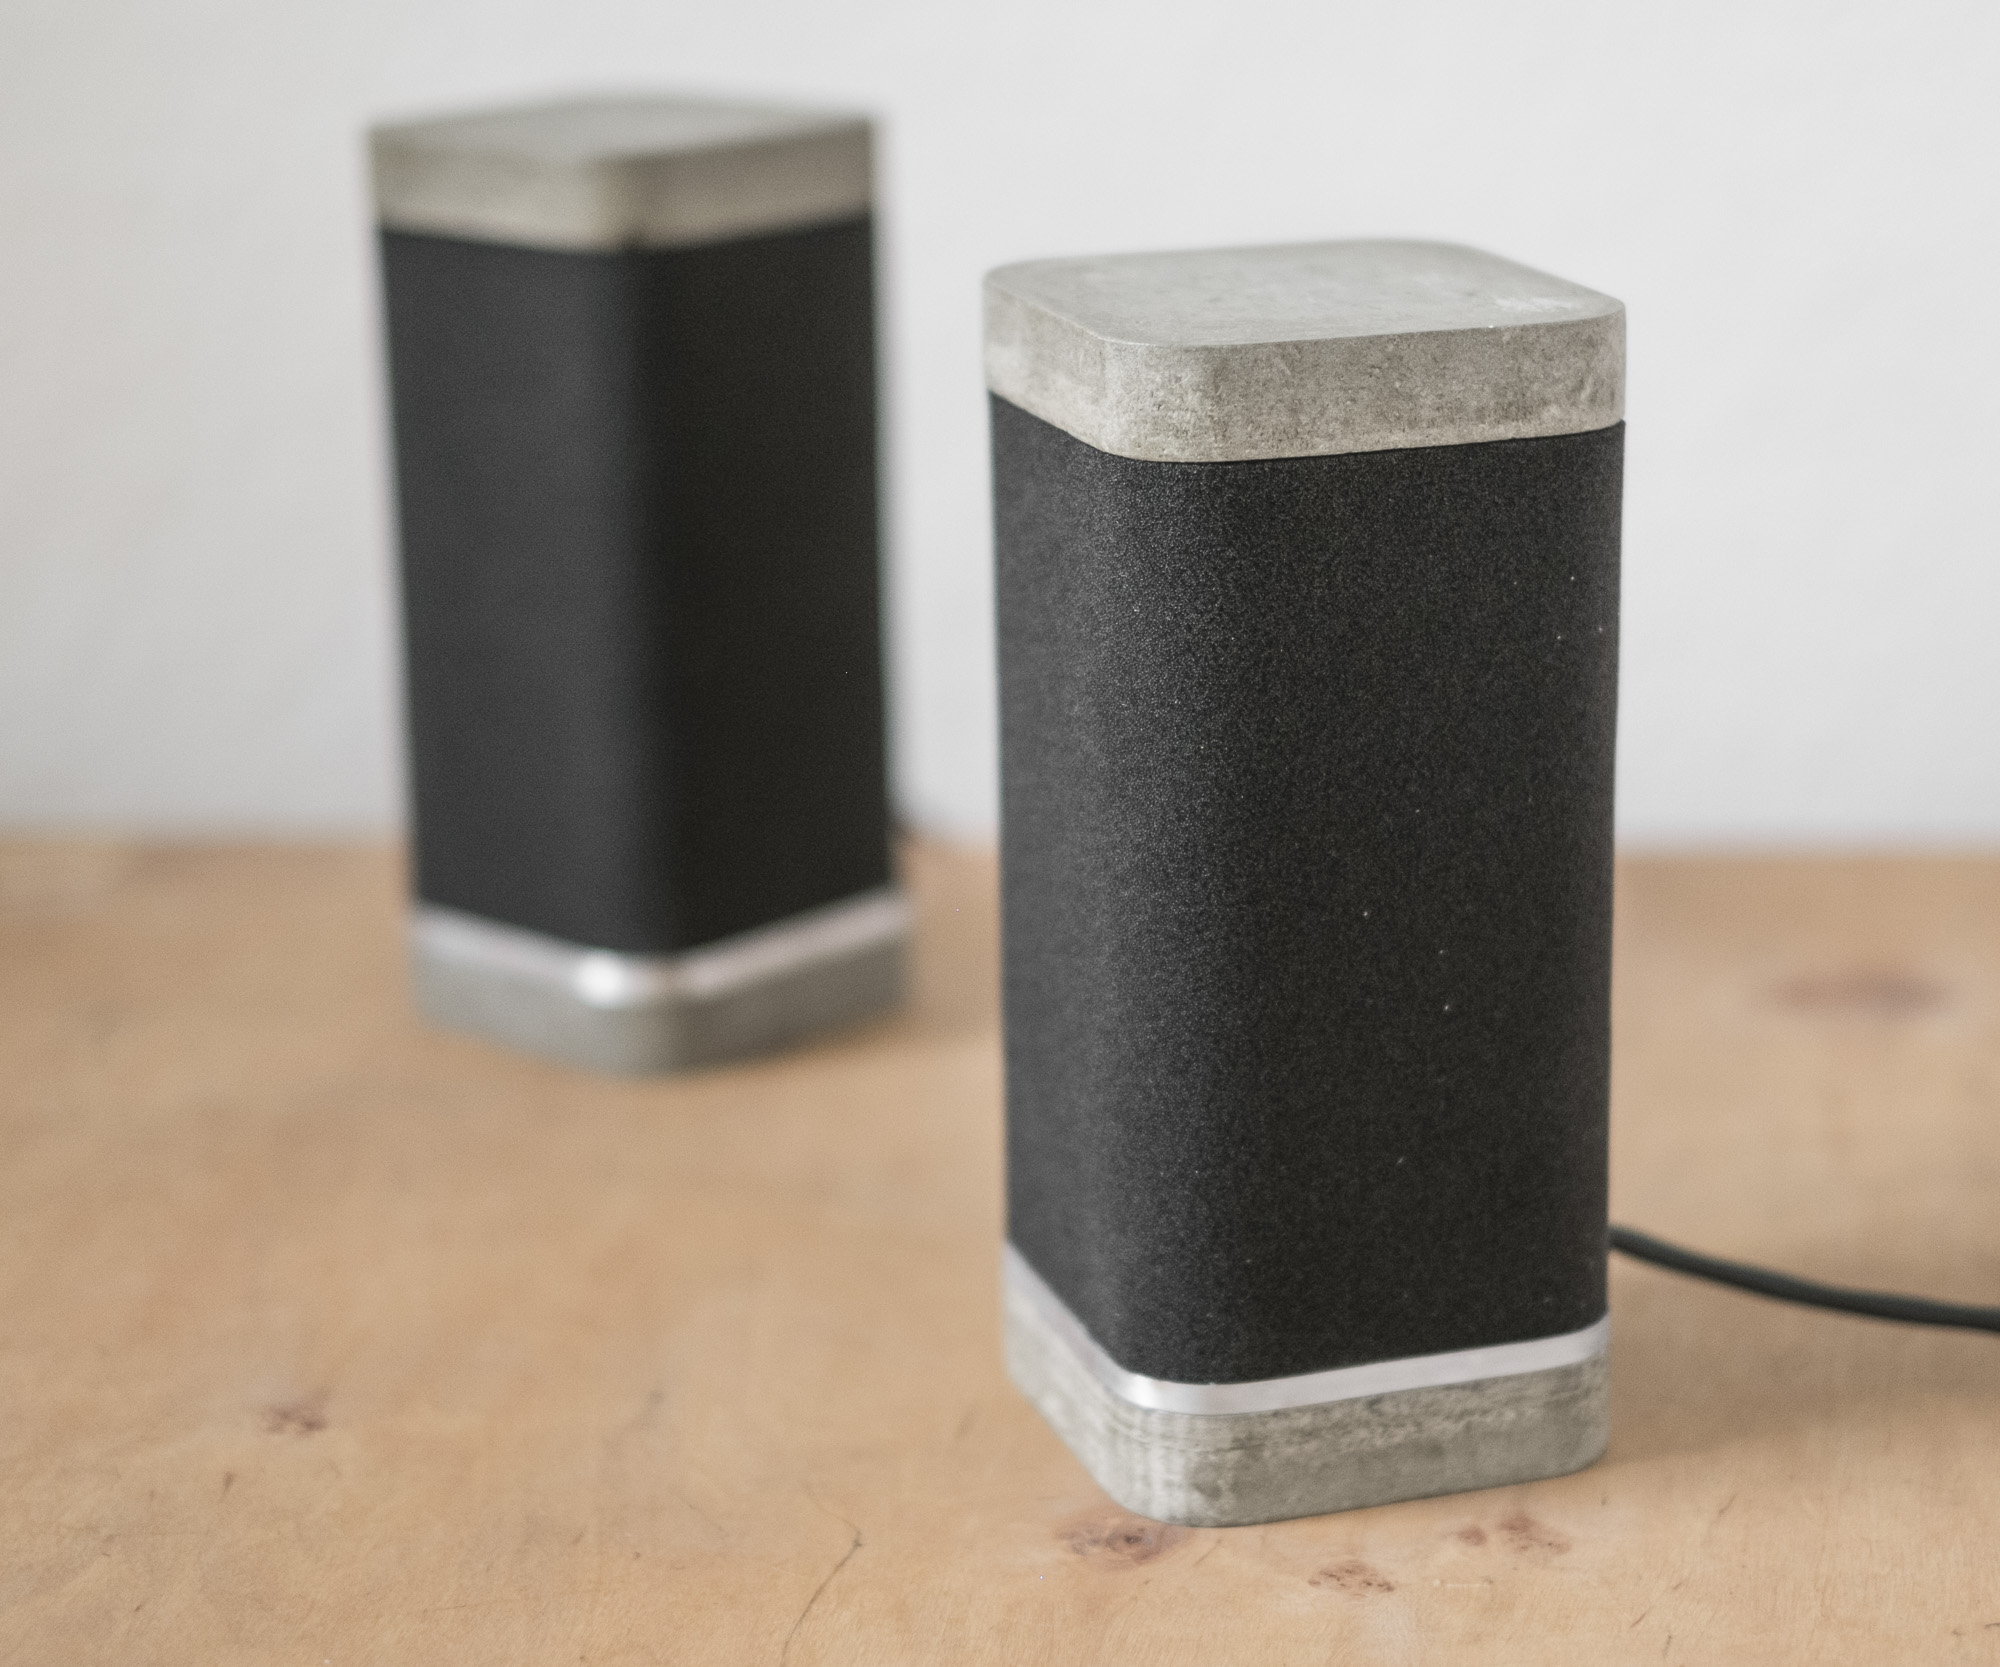 Picture of Logitech X-230 Concrete Speaker Mod